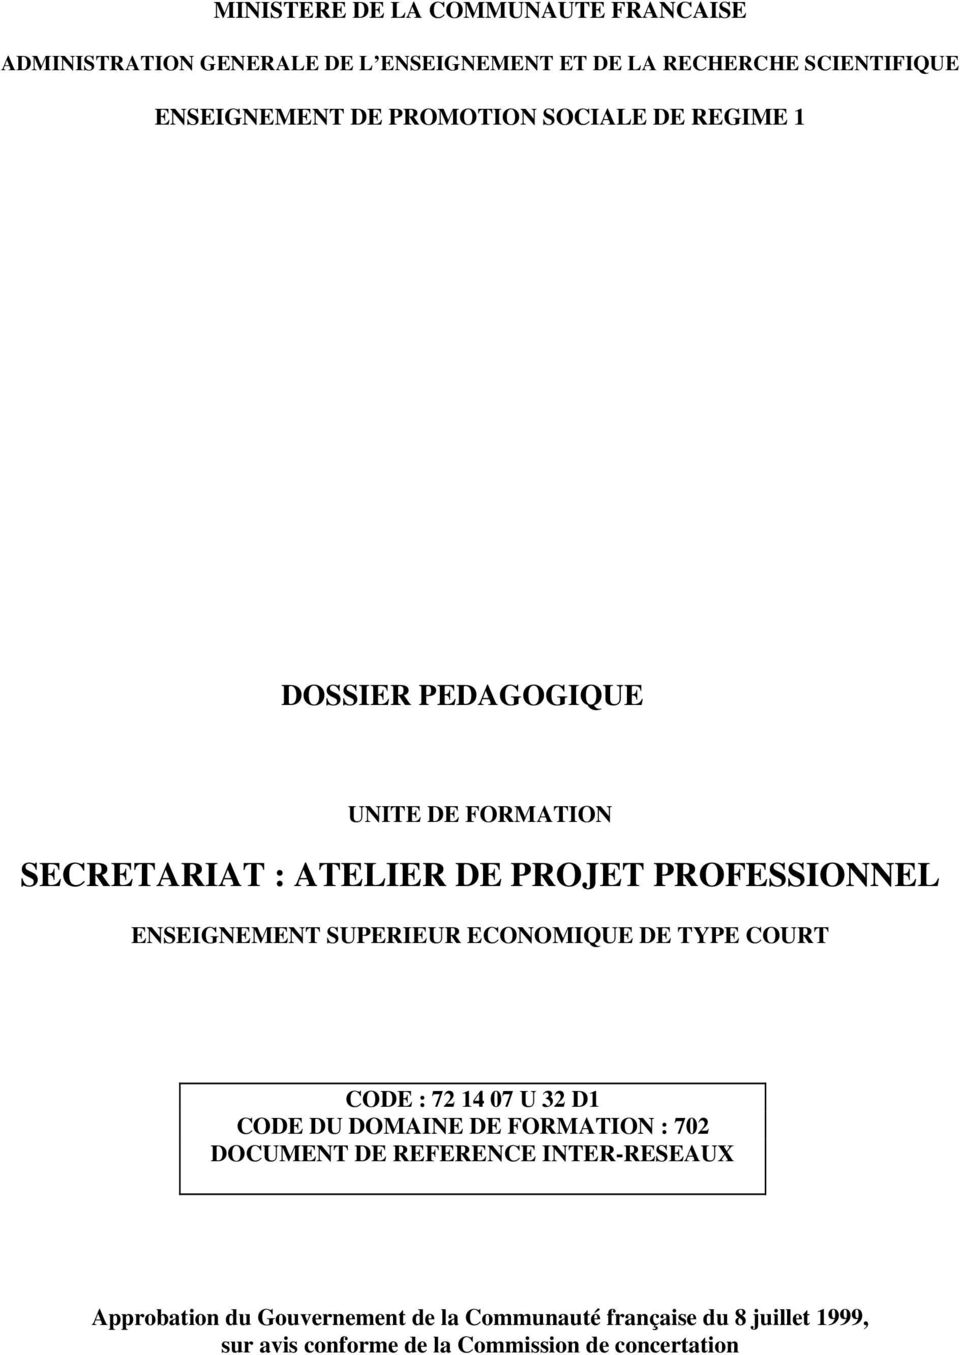 SUPERIEUR ECONOMIQUE DE TYPE COURT CODE : 72 14 07 U 32 D1 CODE DU DOMAINE DE FORMATION : 702 DOCUMENT DE REFERENCE